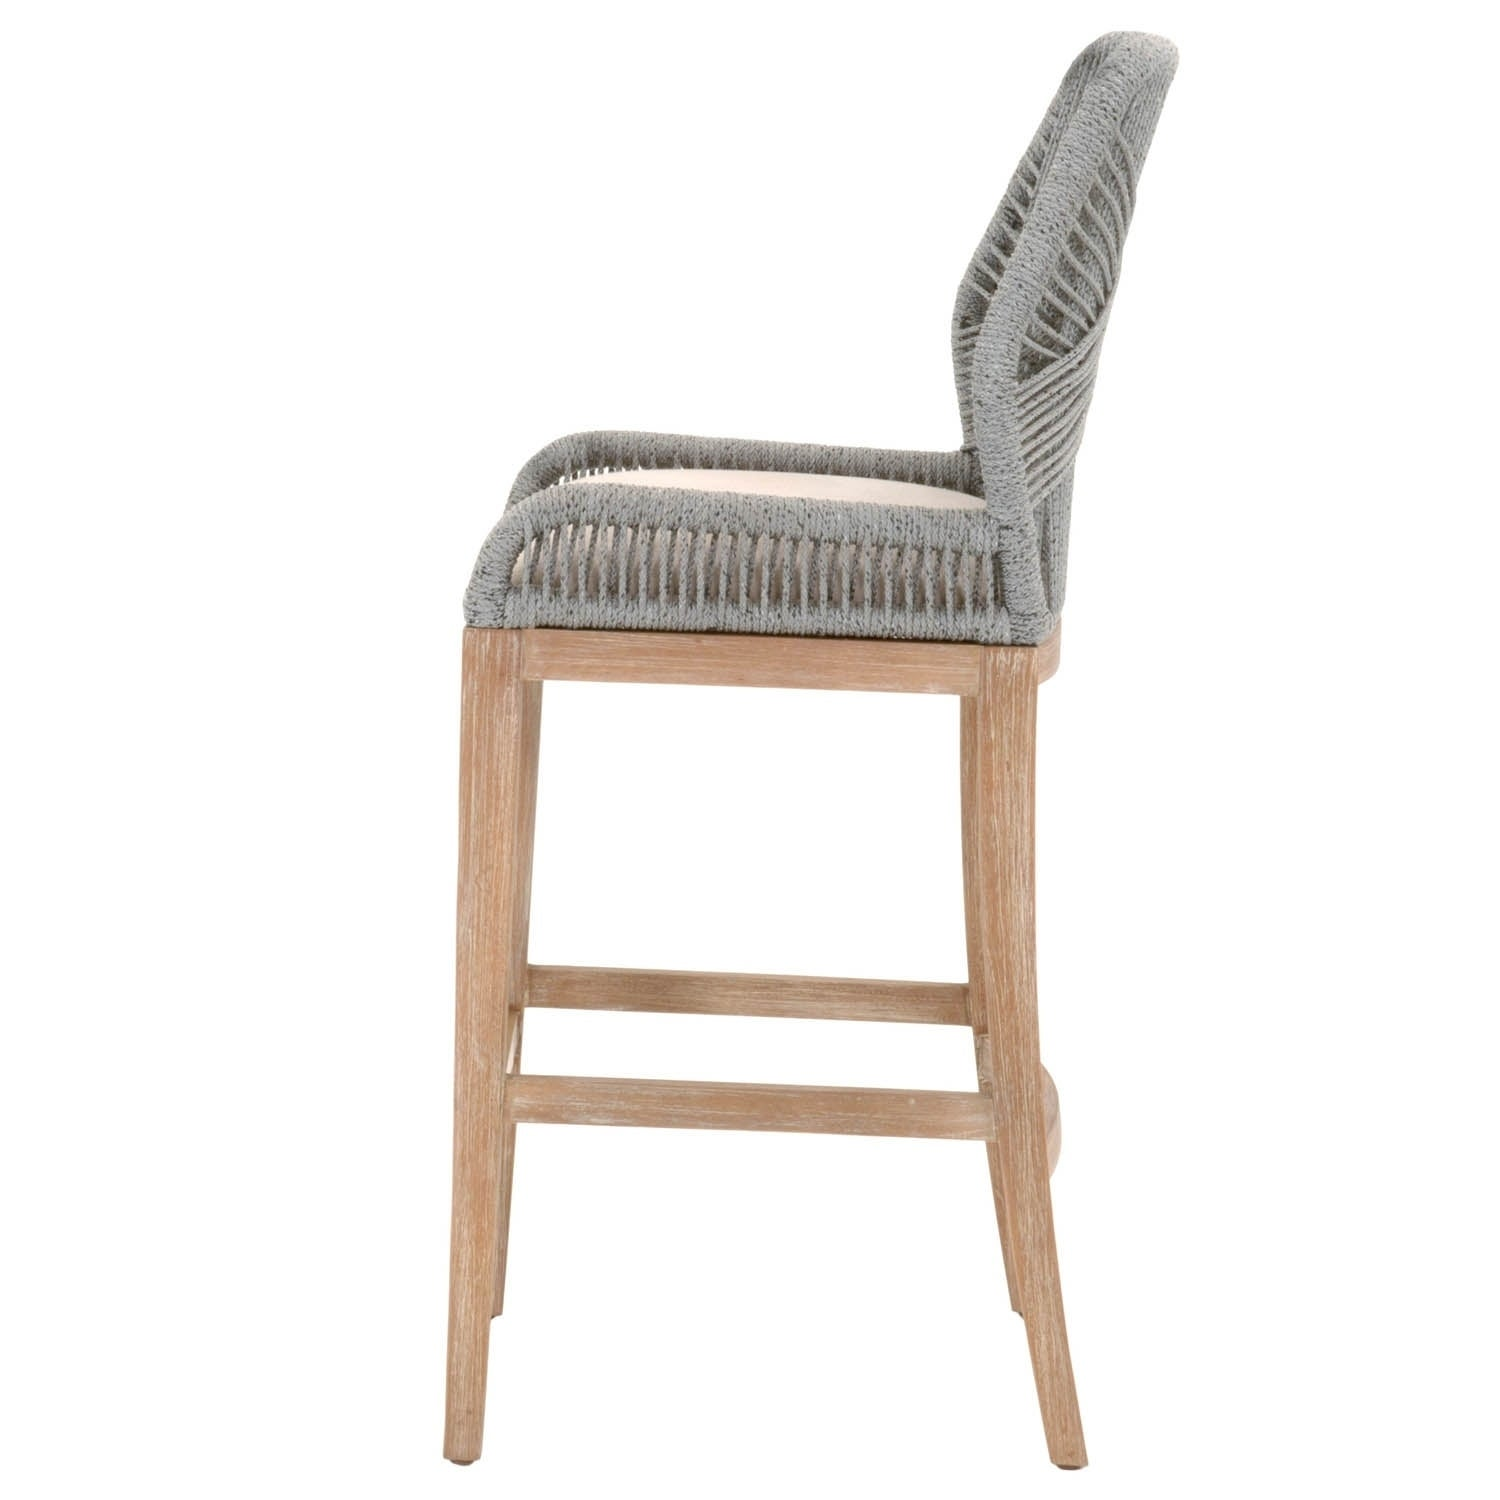 Pleasing Striking Wooven Upholstered Loom Barstool Gray Gmtry Best Dining Table And Chair Ideas Images Gmtryco